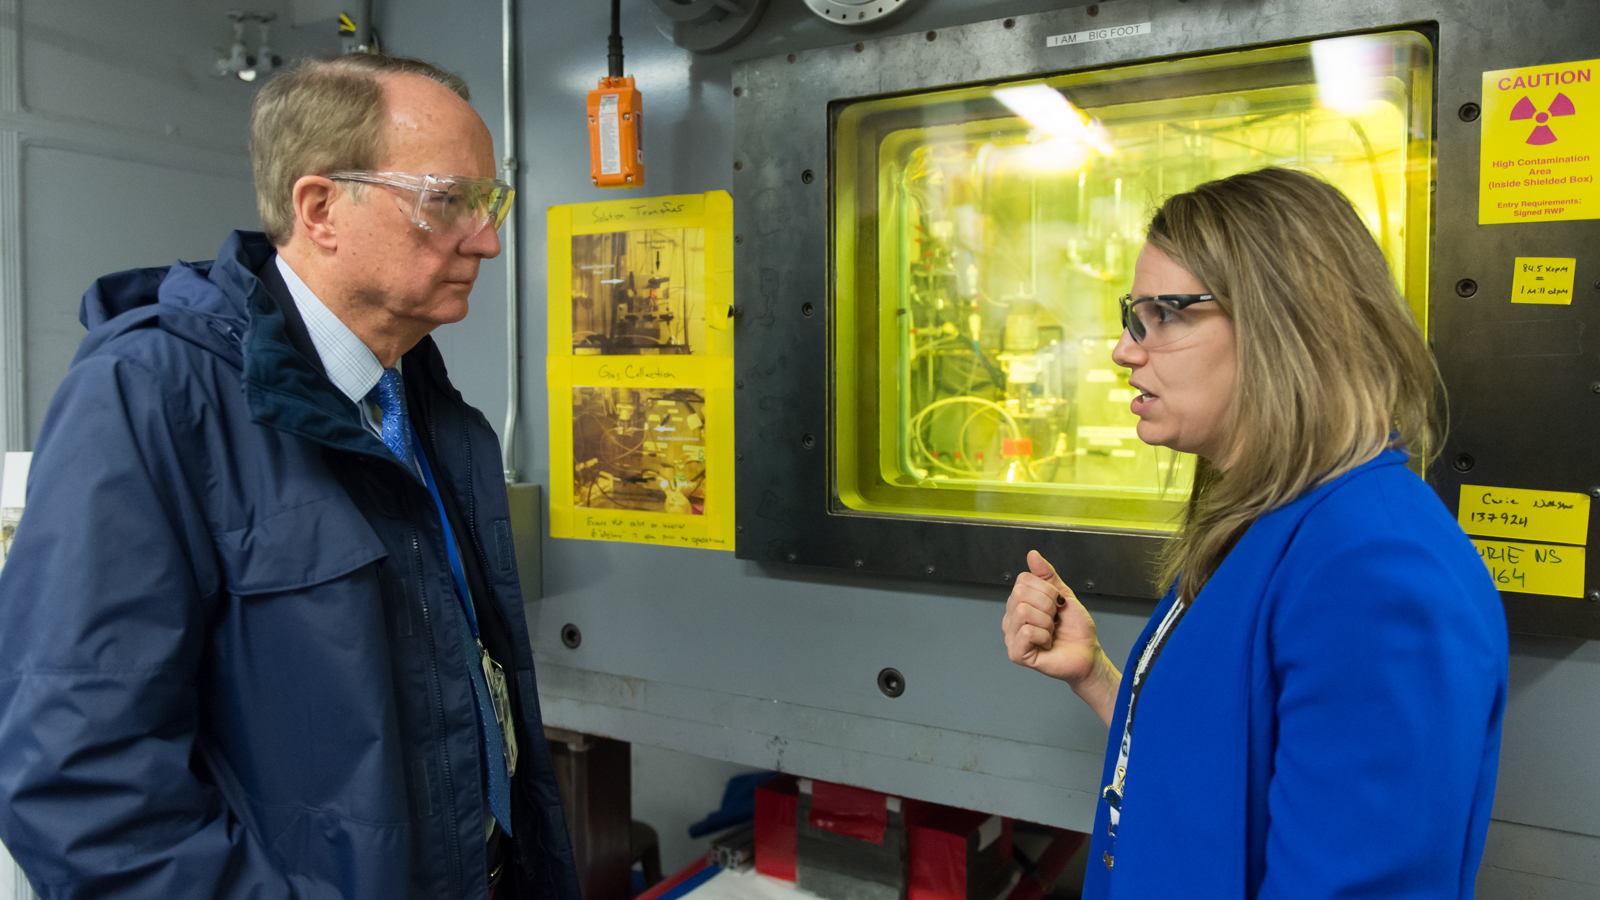 Argonne chemist Amanda Youker discusses the molybdenum-99 program, which supports nonproliferation goals, with Administrator Frank Klotz of the National Nuclear Security Administration.